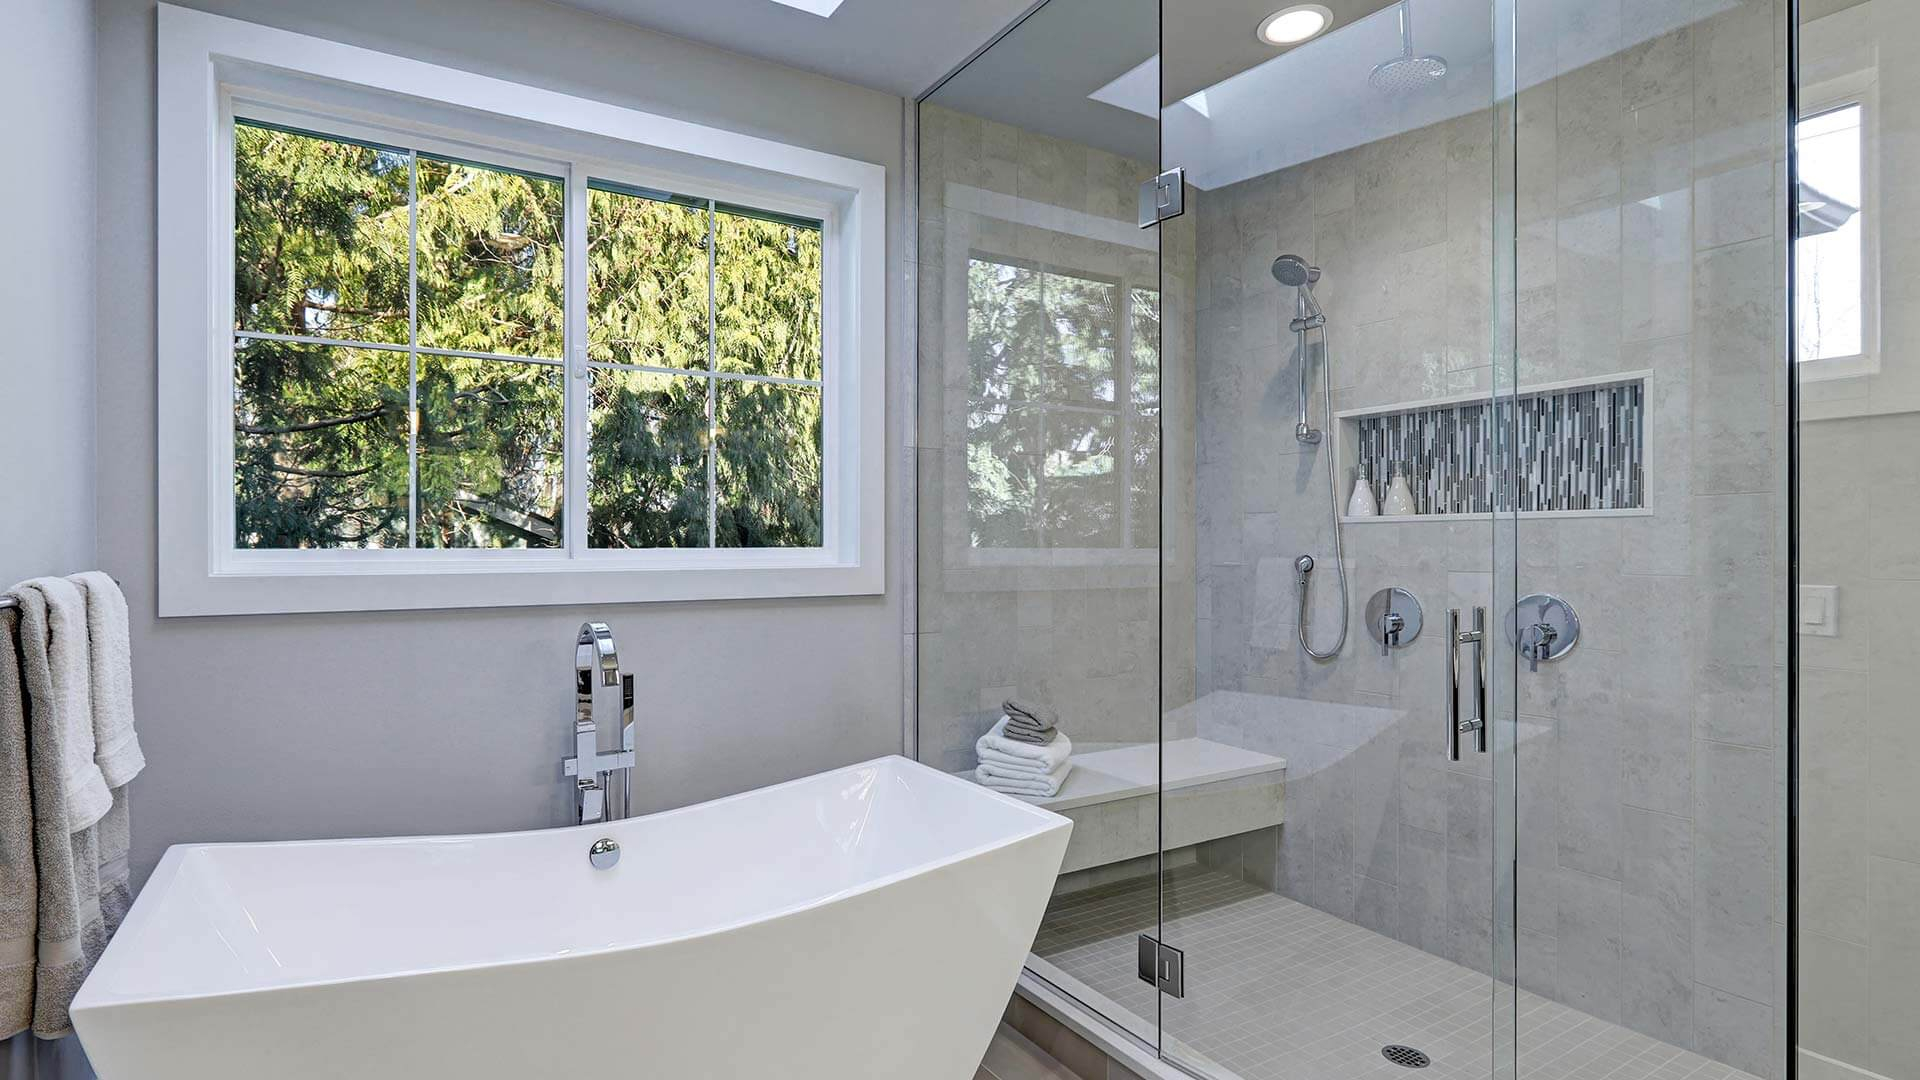 Modern renovated bathroom with a Classic Series Double Slider Window.